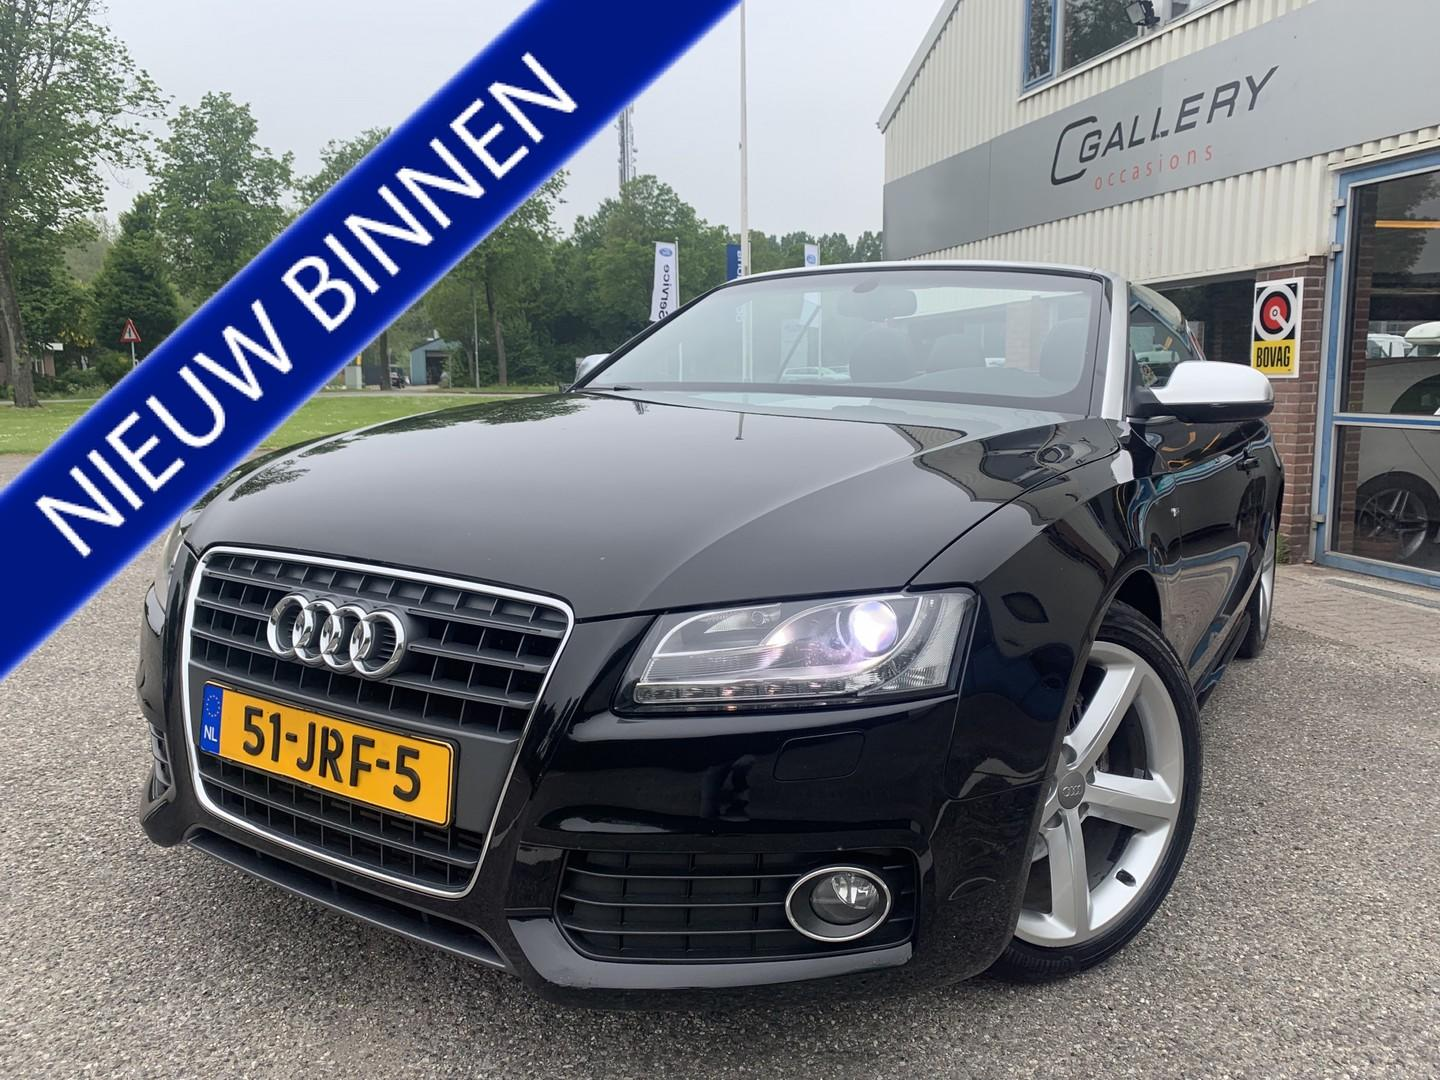 Audi A5 Cabriolet 2.0 tfsi pro 2xs-line, automaat, nederlanse auto, navi, pdc, cruise, xenon - incl. 3 mnd garantie!